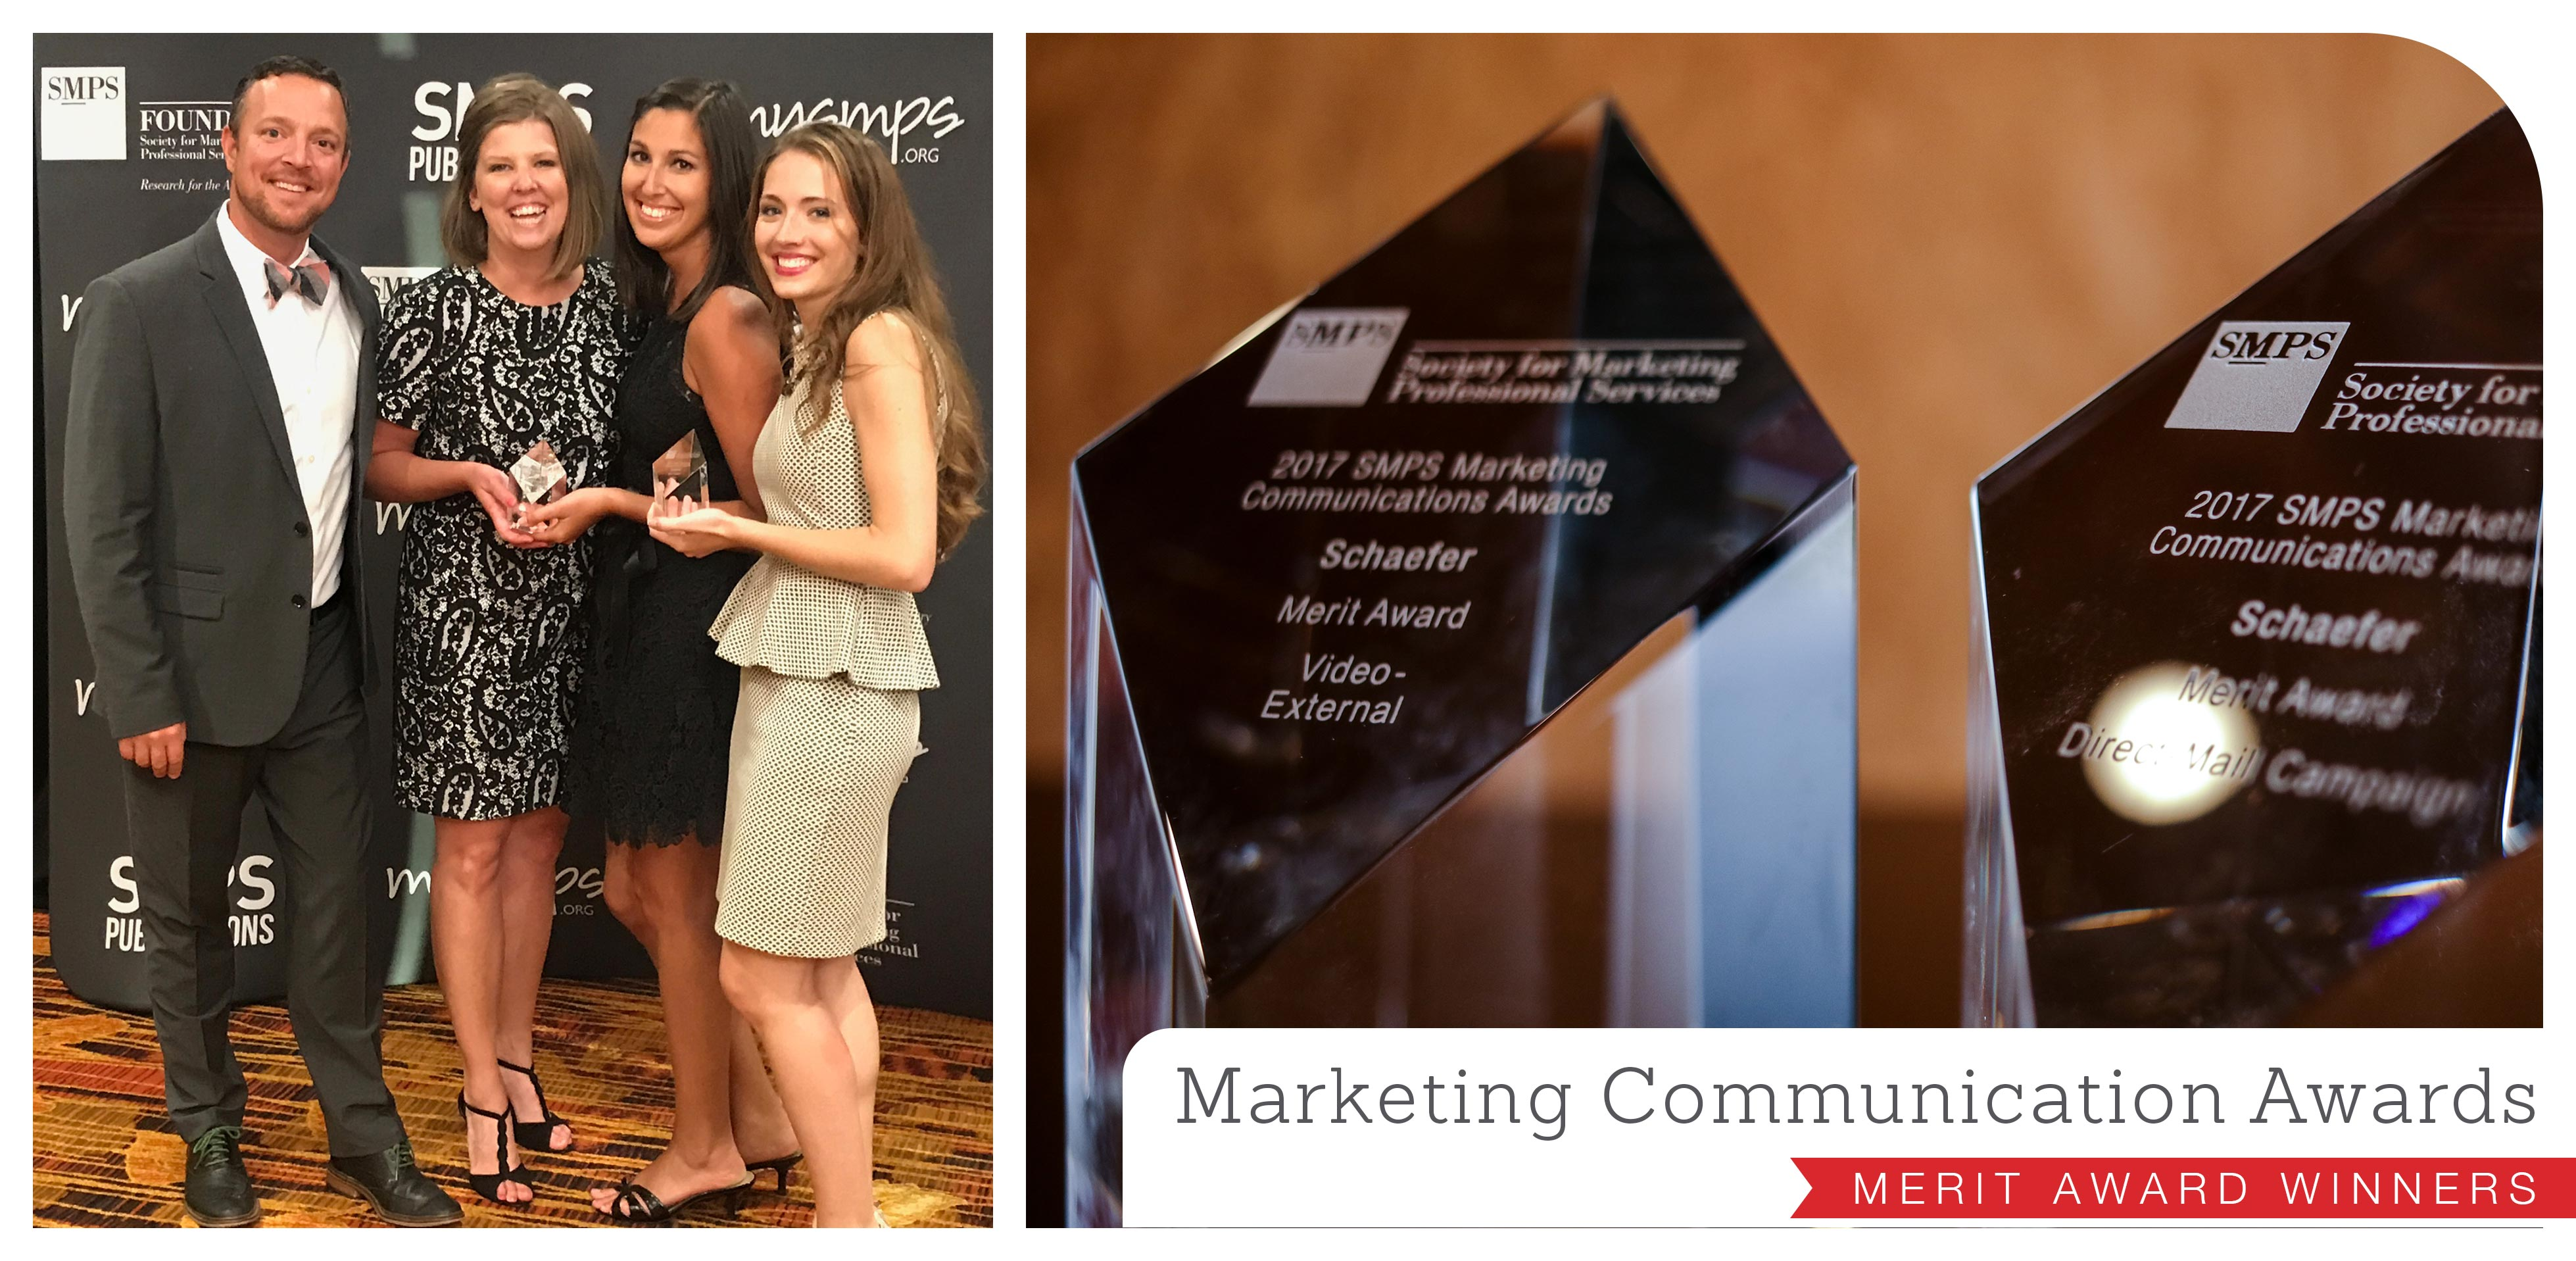 Schaefer takes home two merit awards at the 2017 SMPS Marketing Communication Awards in Indianapolis, Indiana.